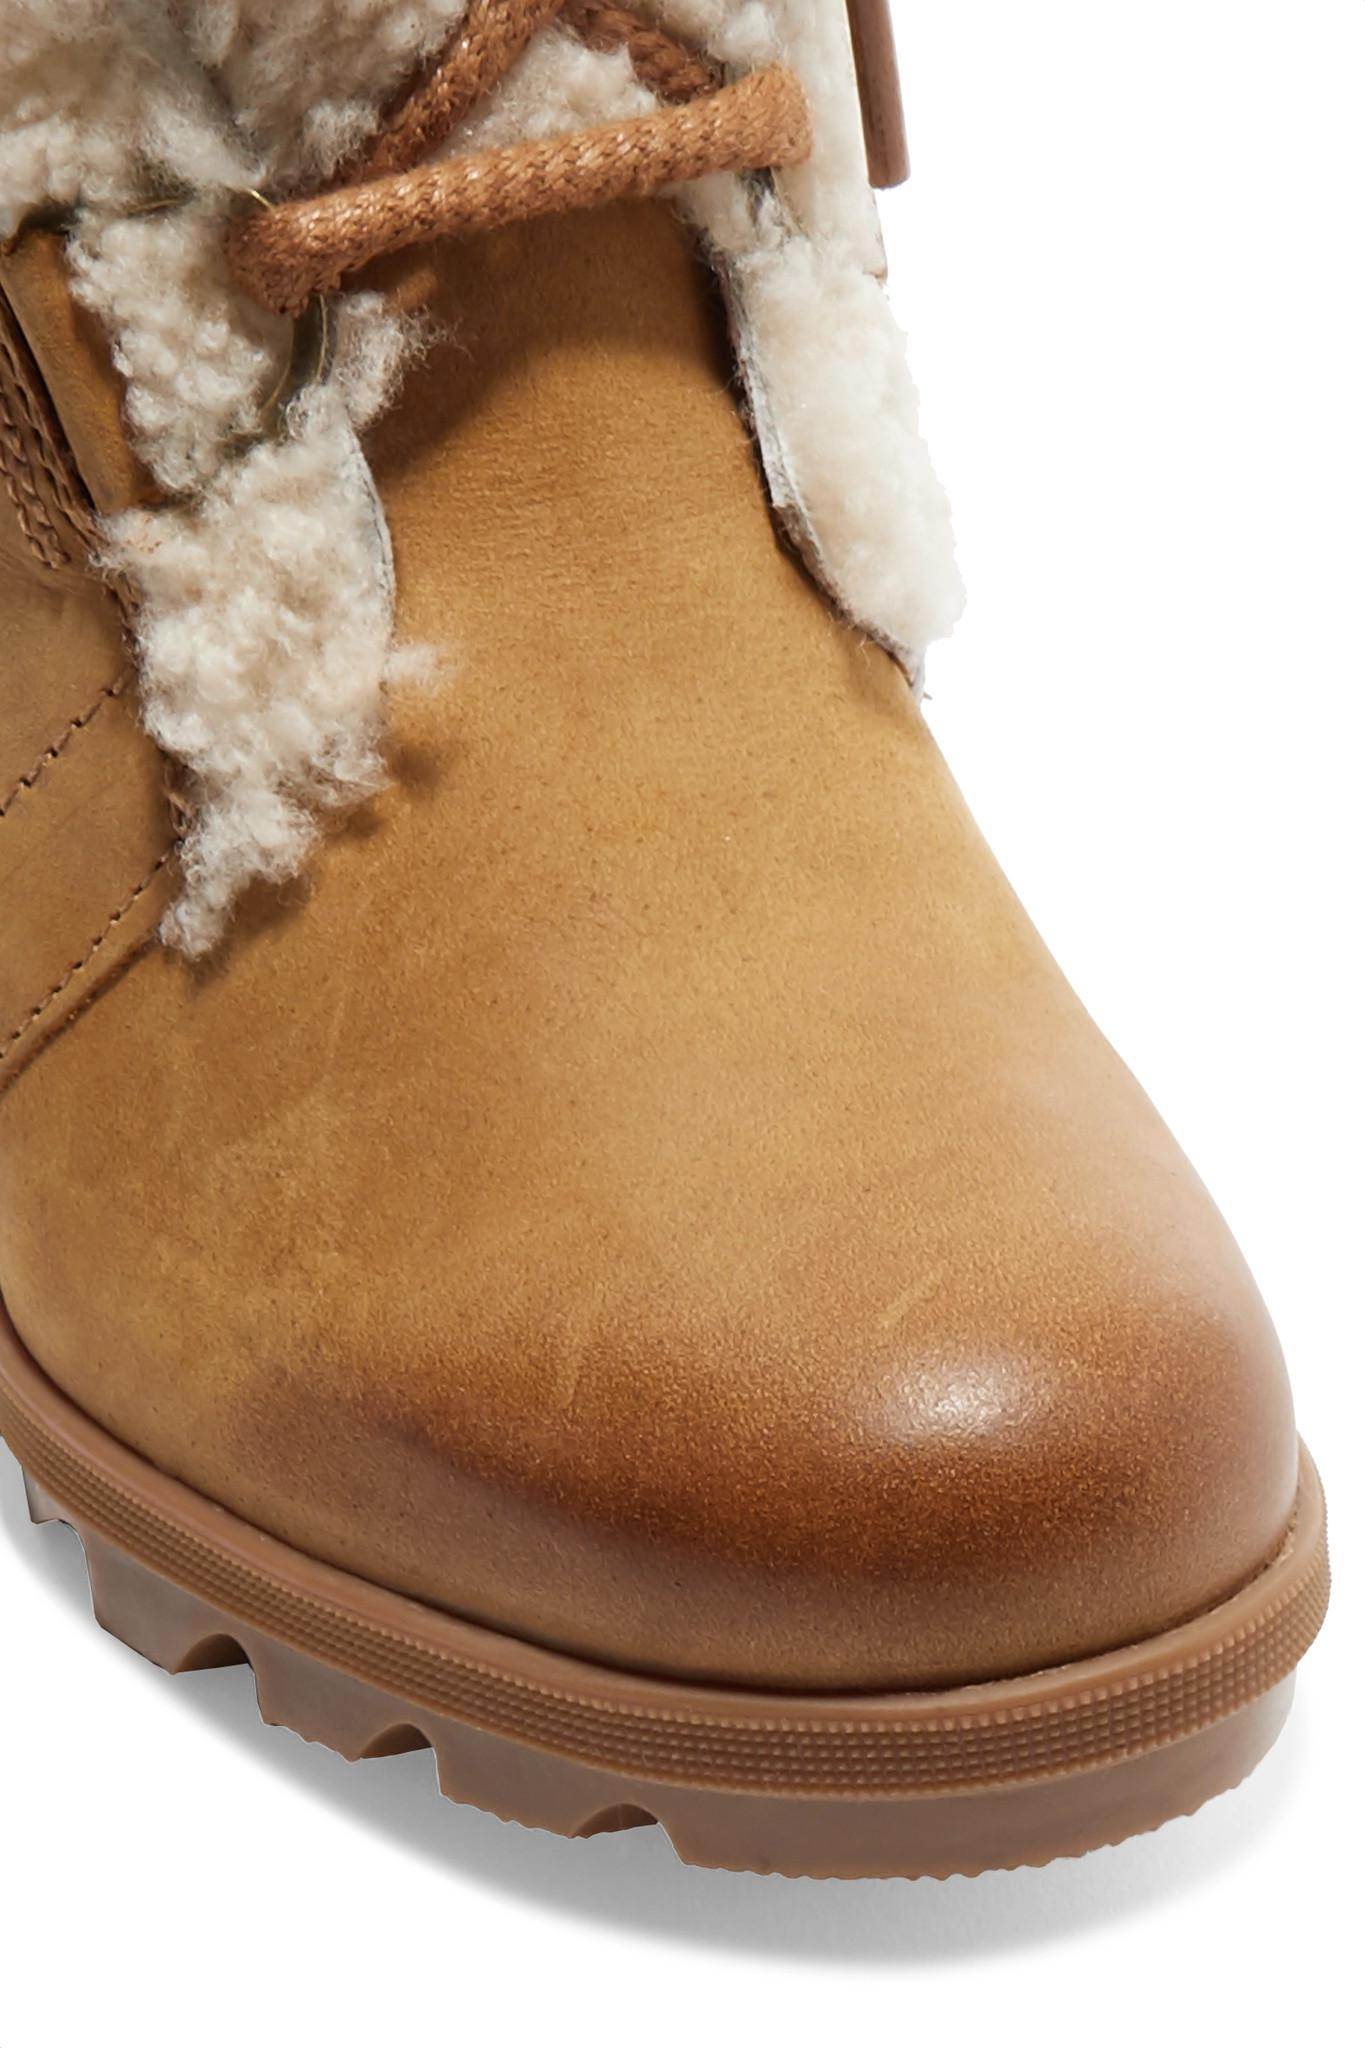 b4901f5da8d3 Sorel - Brown Joan Of Arctic Wedge Ii Shearling-trimmed Waterproof Leather  And Suede Ankle. View fullscreen